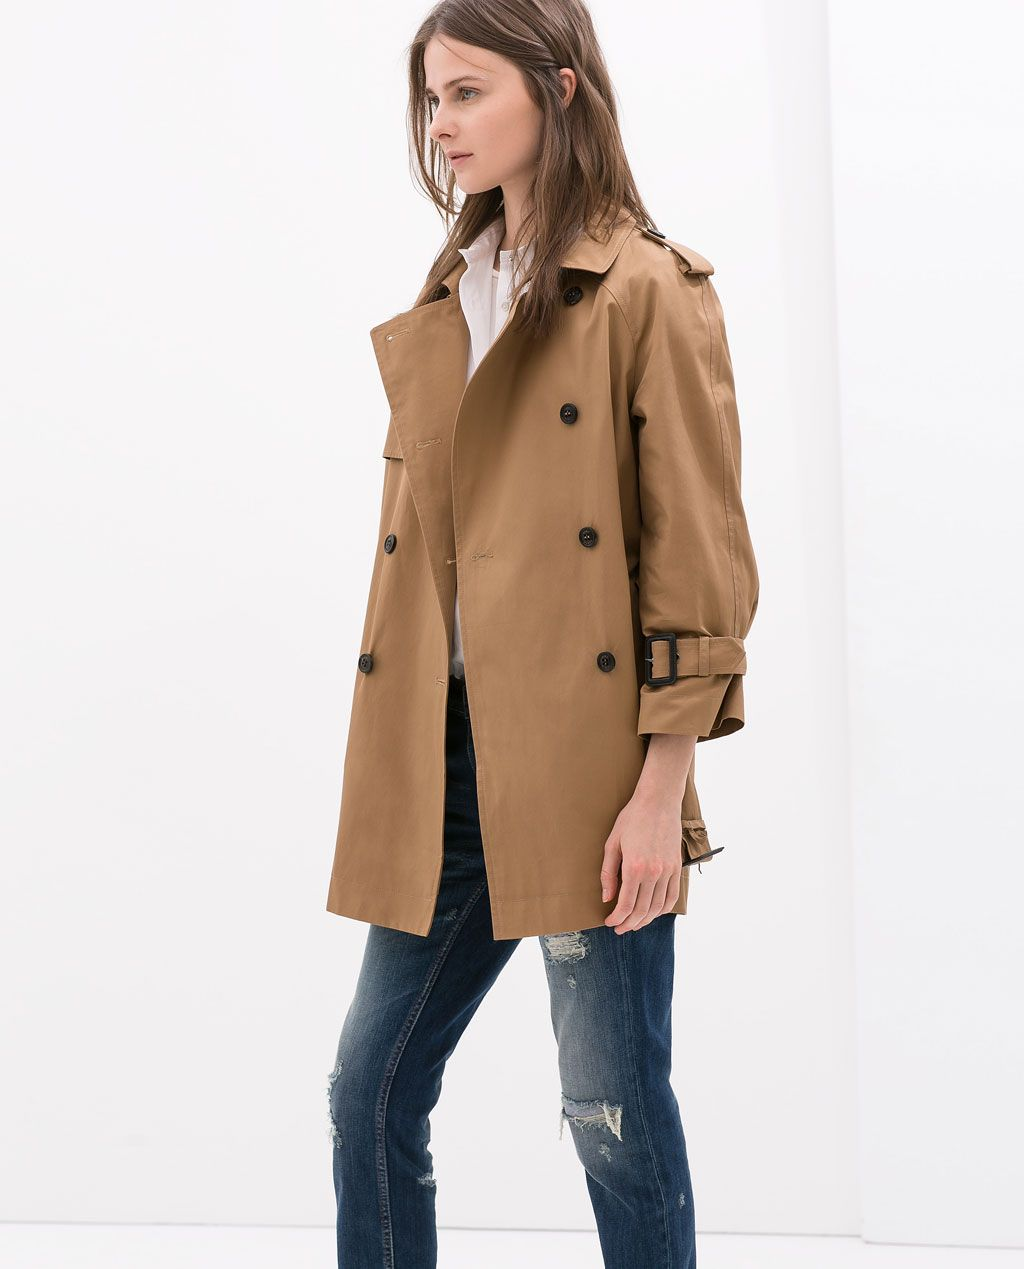 SHORT TRENCH COAT-Collection-WOMAN-SALE AW.14 | ZARA United States ...